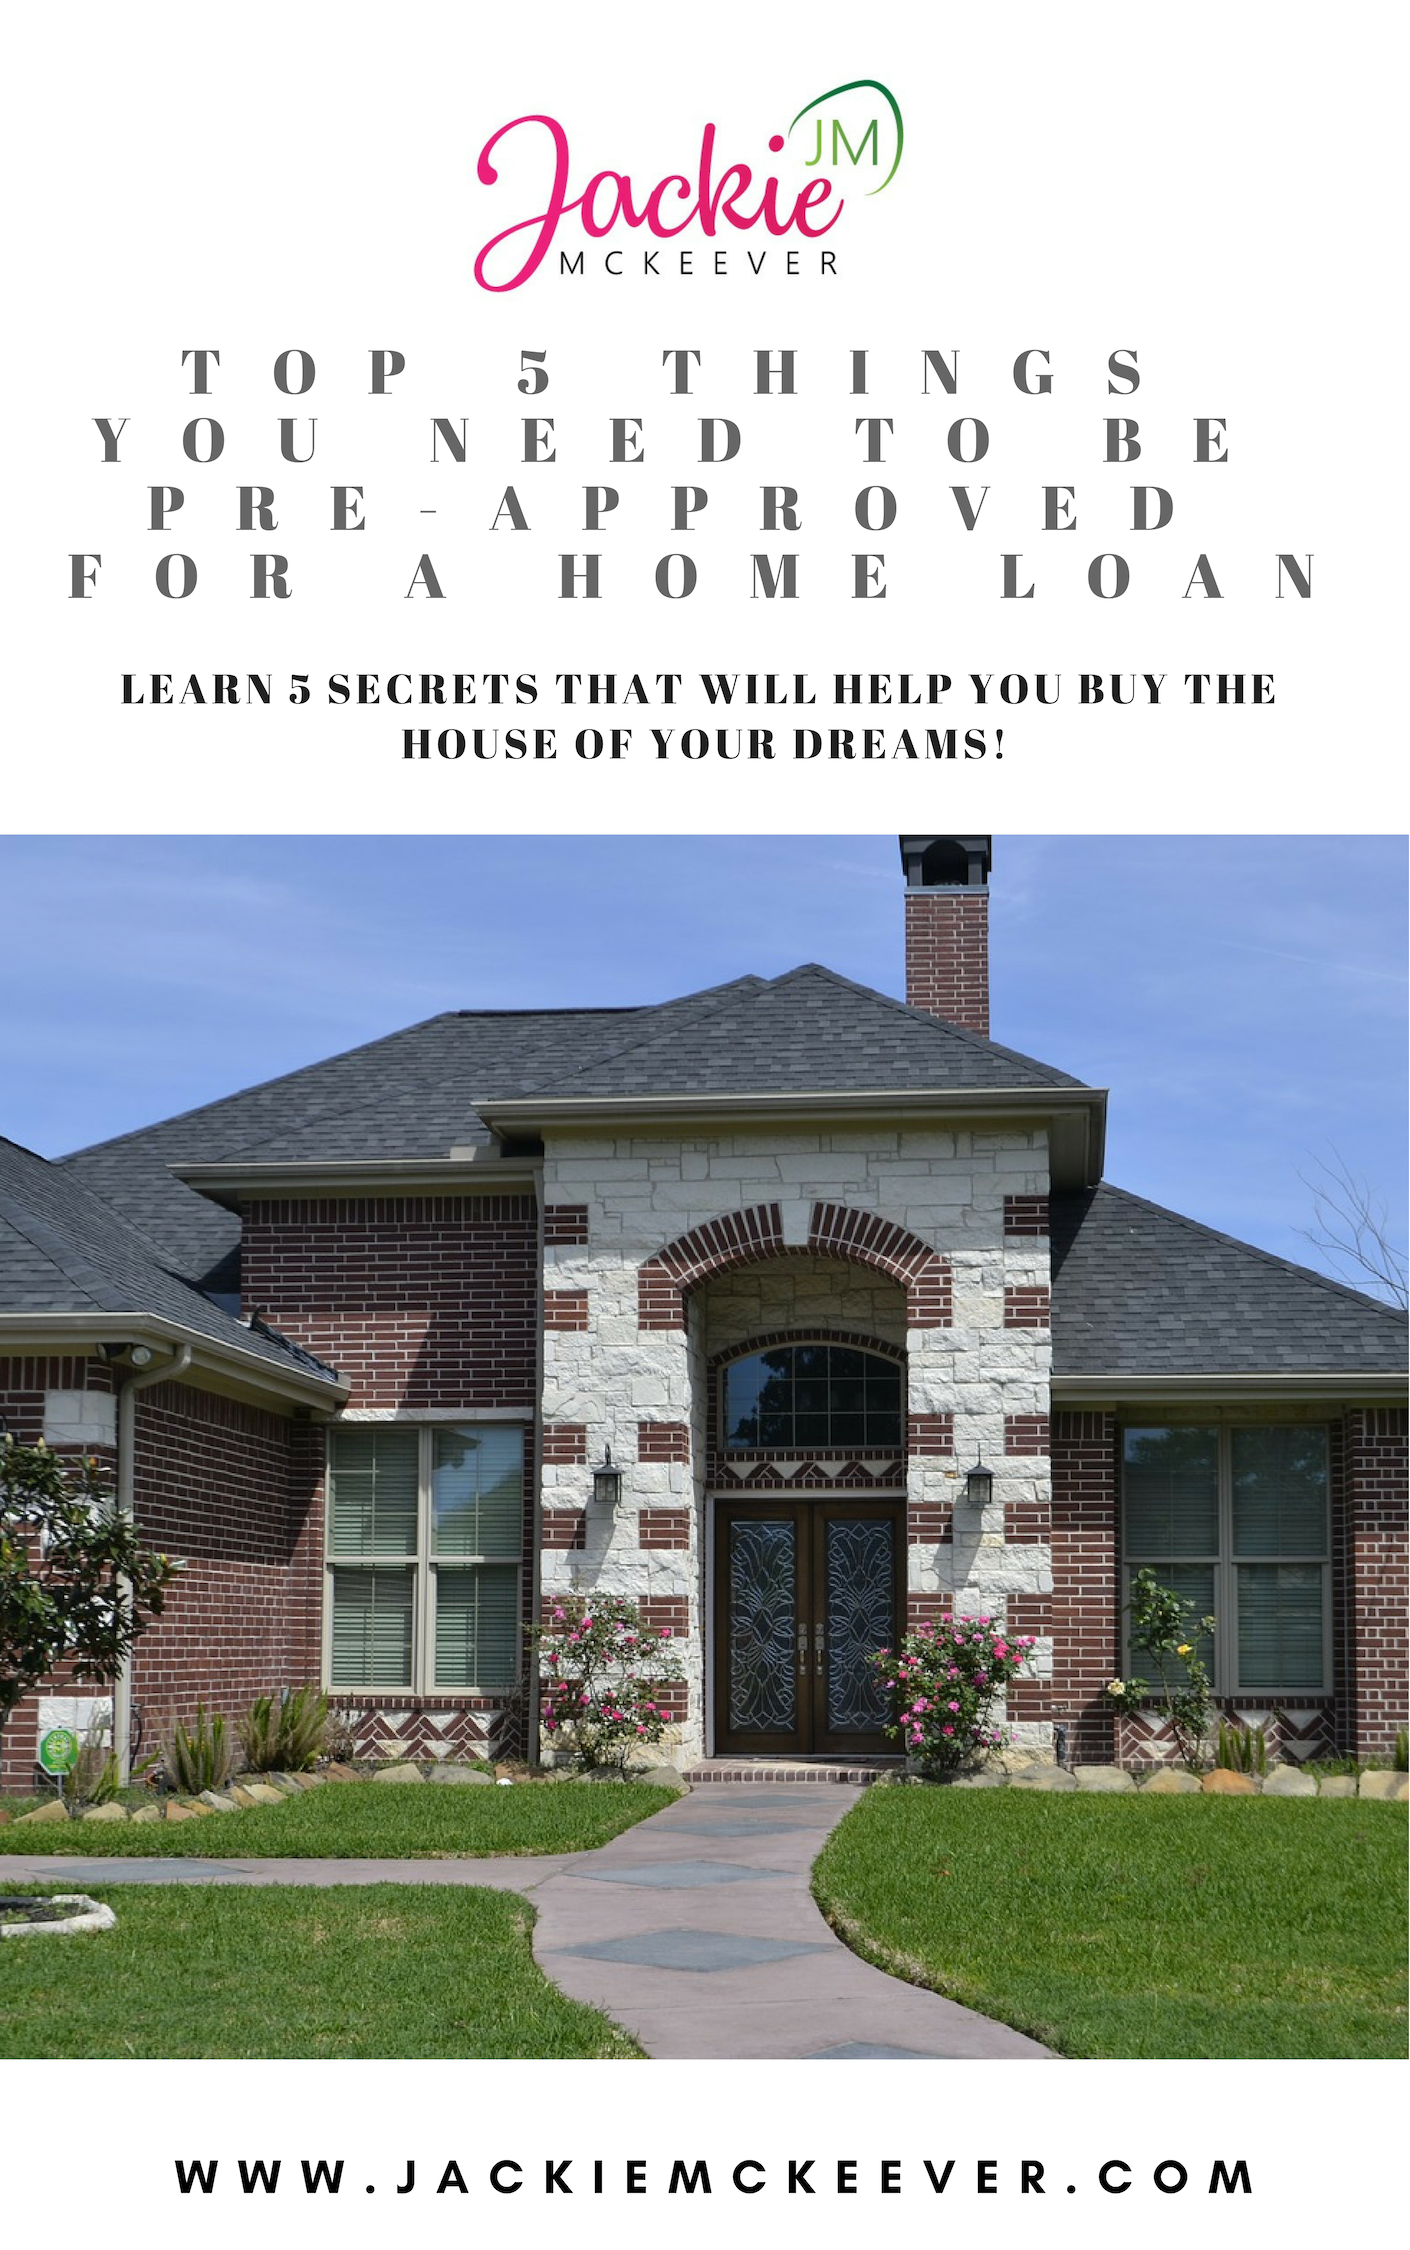 TOP 5 THINGS TO GET PRE-APPROVED FOR YOUR HOME